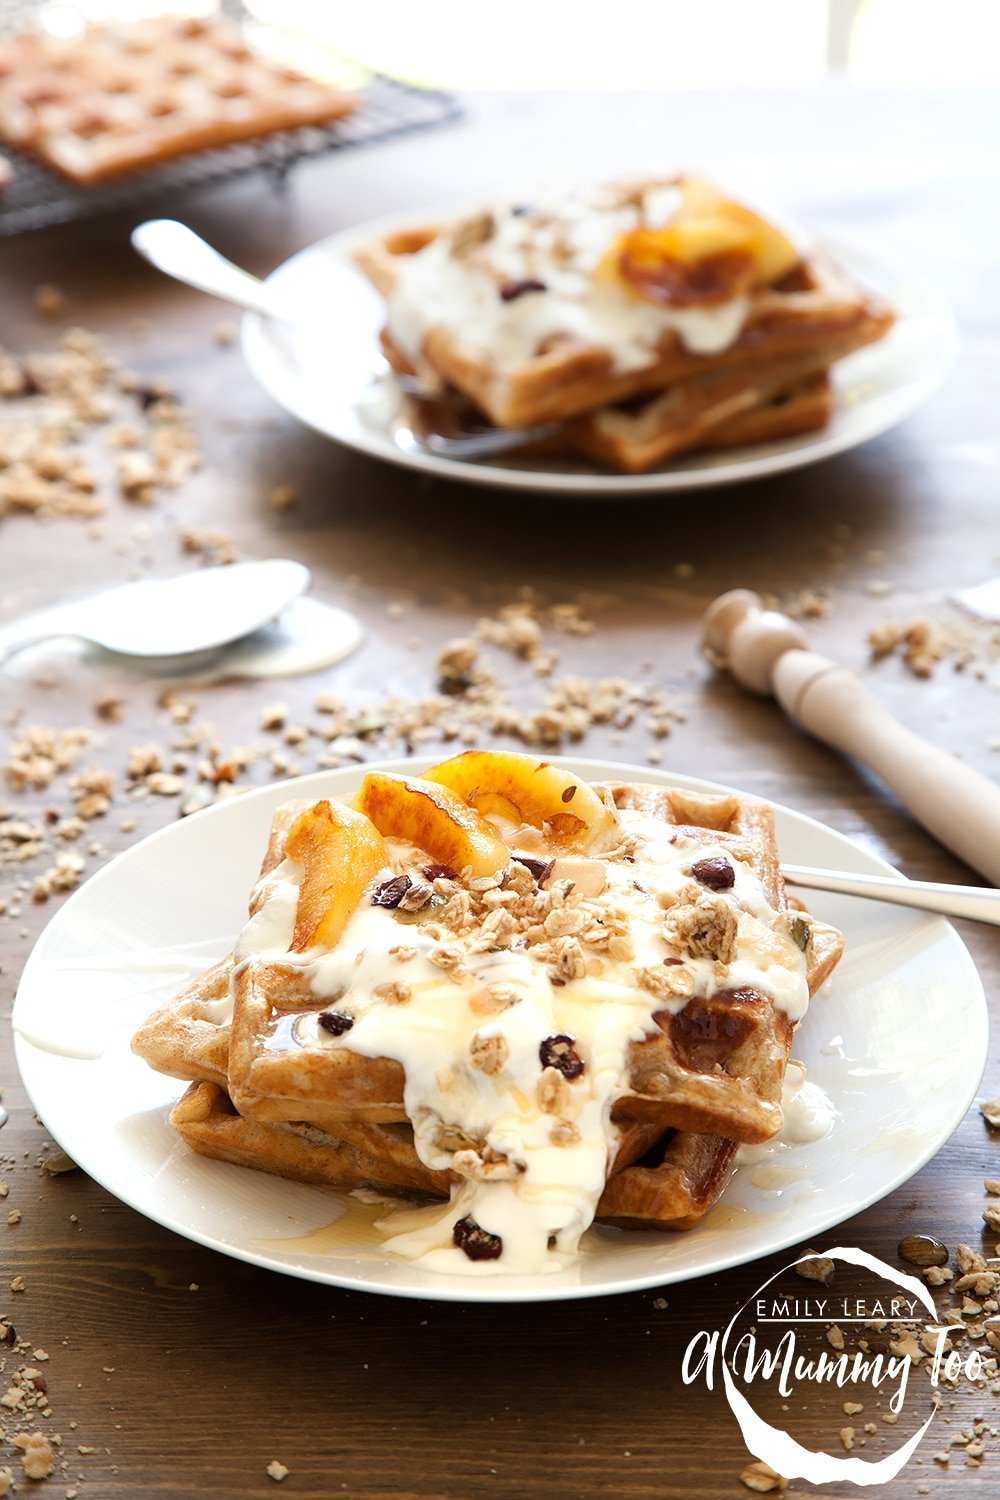 Granola waffles with coconut fried apples - a delicious, textured breakfast packed with granola and fruit